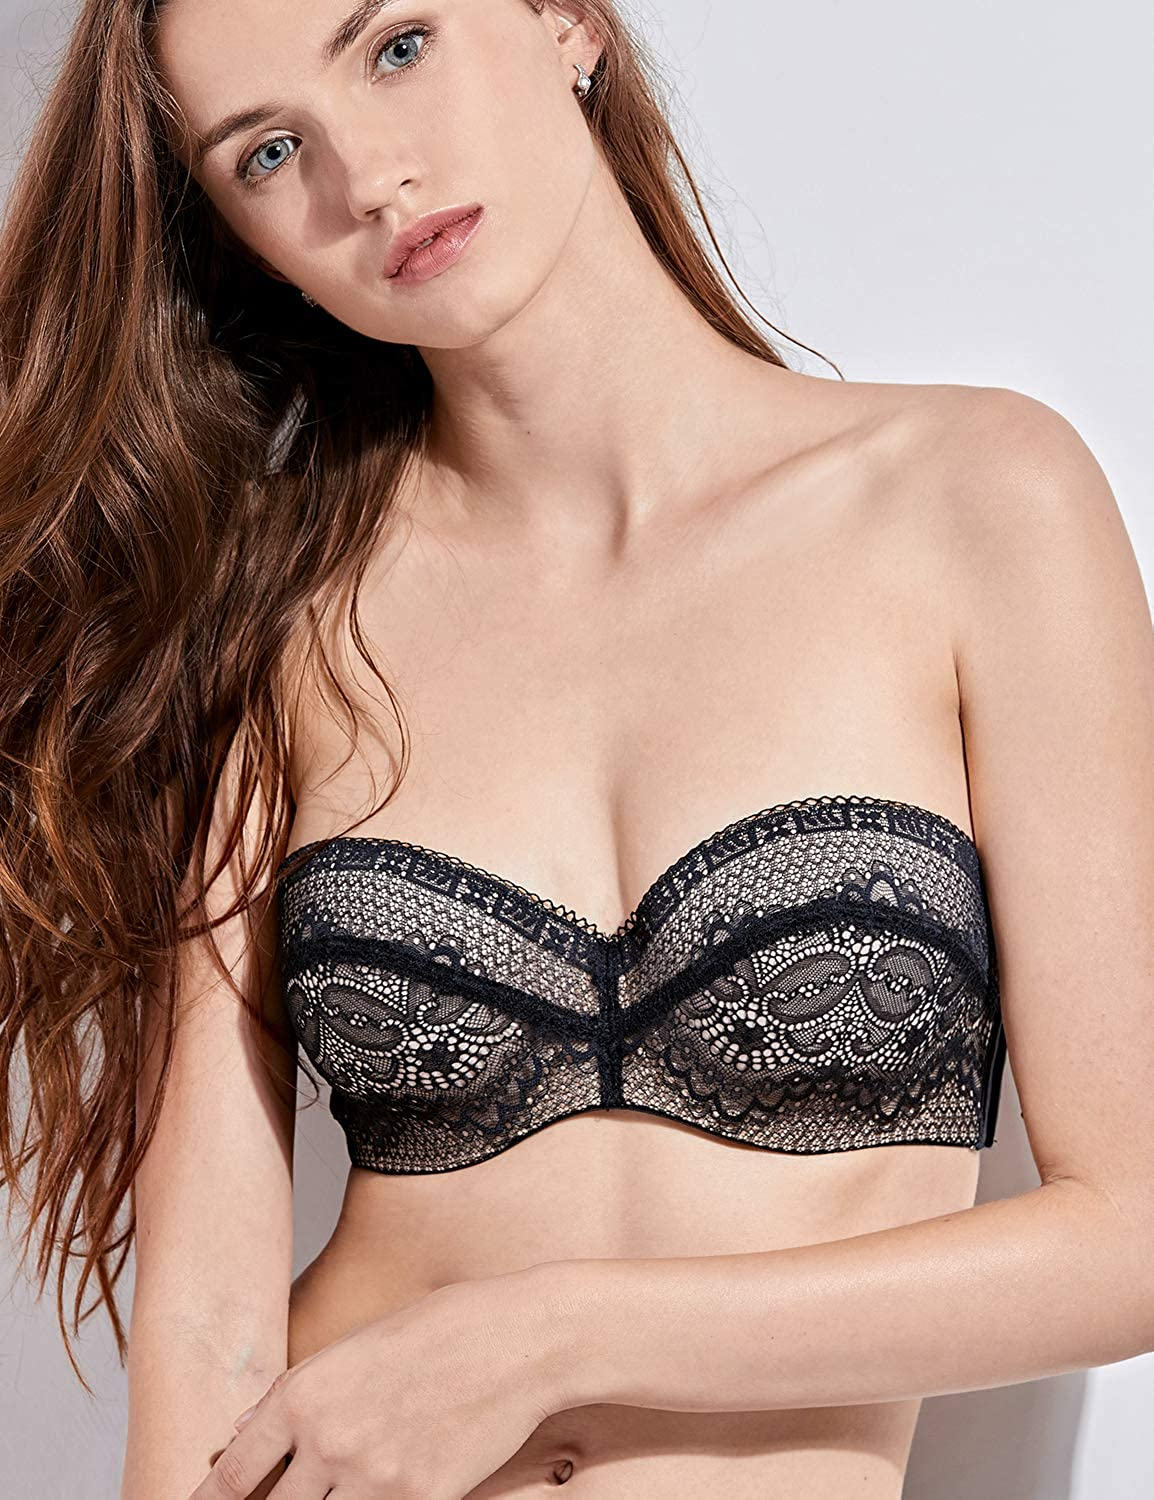 377778aa5b7 DELIMIRA Women s Slightly Padded Lace Underwire Convertible Multiway  Strapless Bra at Amazon Women s Clothing store